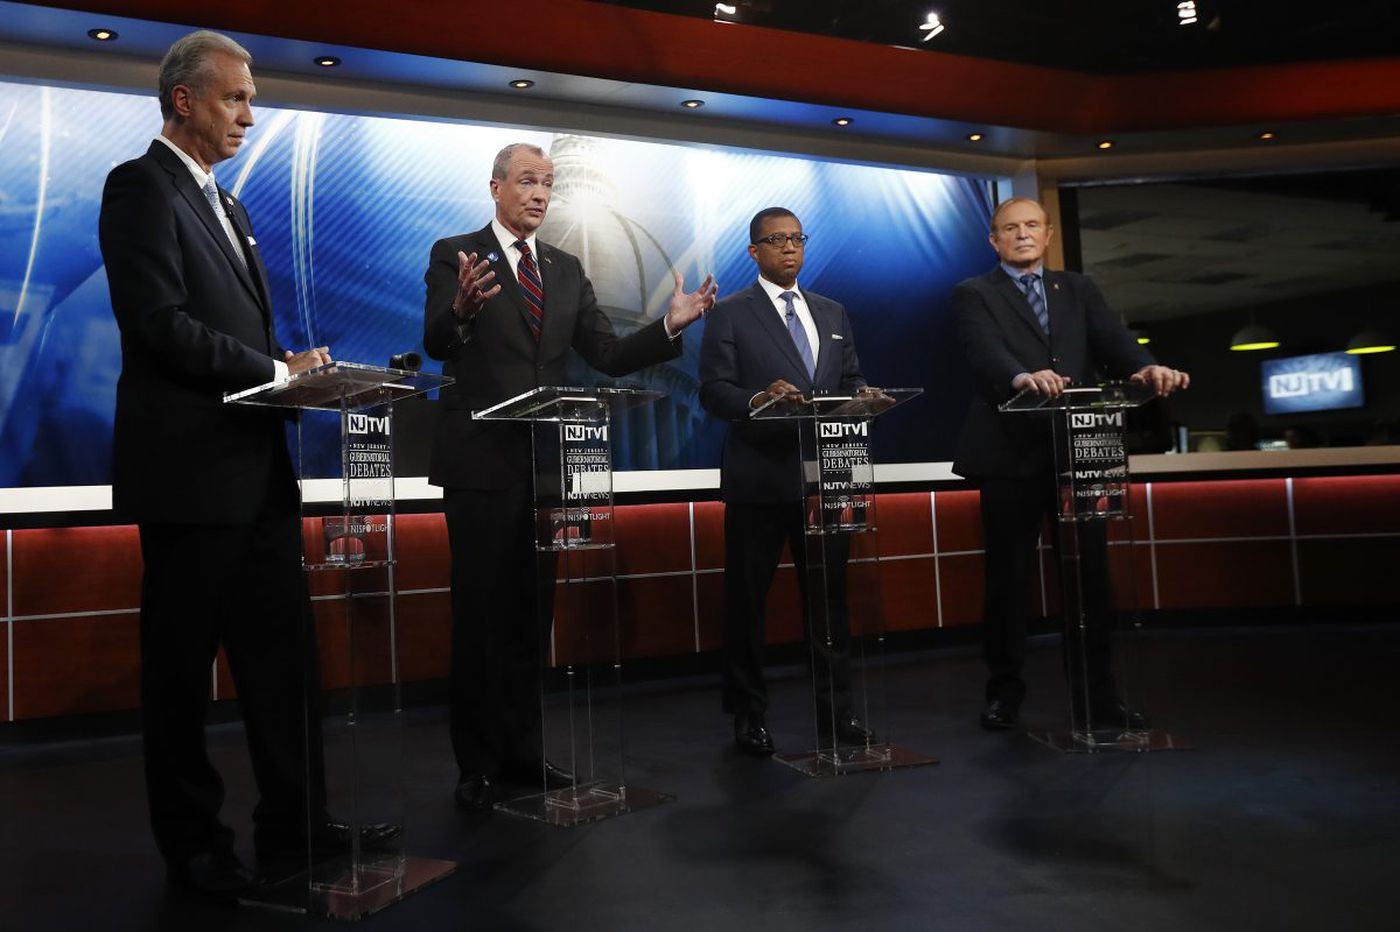 N.J. Dems lurch to the left in governor's race. Is there room for a centrist?